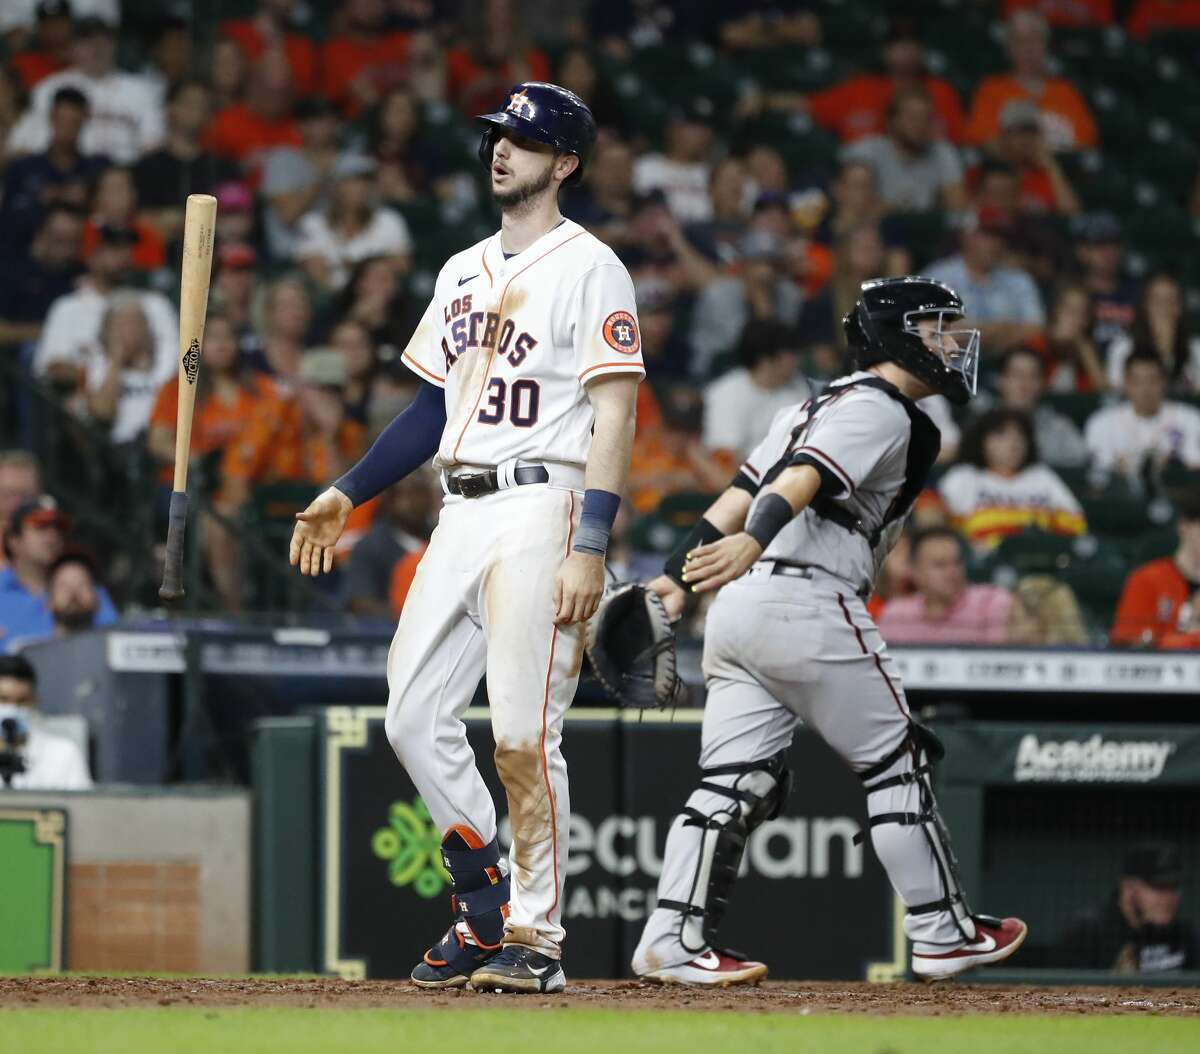 Houston Astros Kyle Tucker (30) flips his bat after striking out against Arizona Diamondbacks relief pitcher Joe Mantiply during the eighth inning of an MLB baseball game at Minute Maid Park, Saturday, September 18, 2021, in Houston.